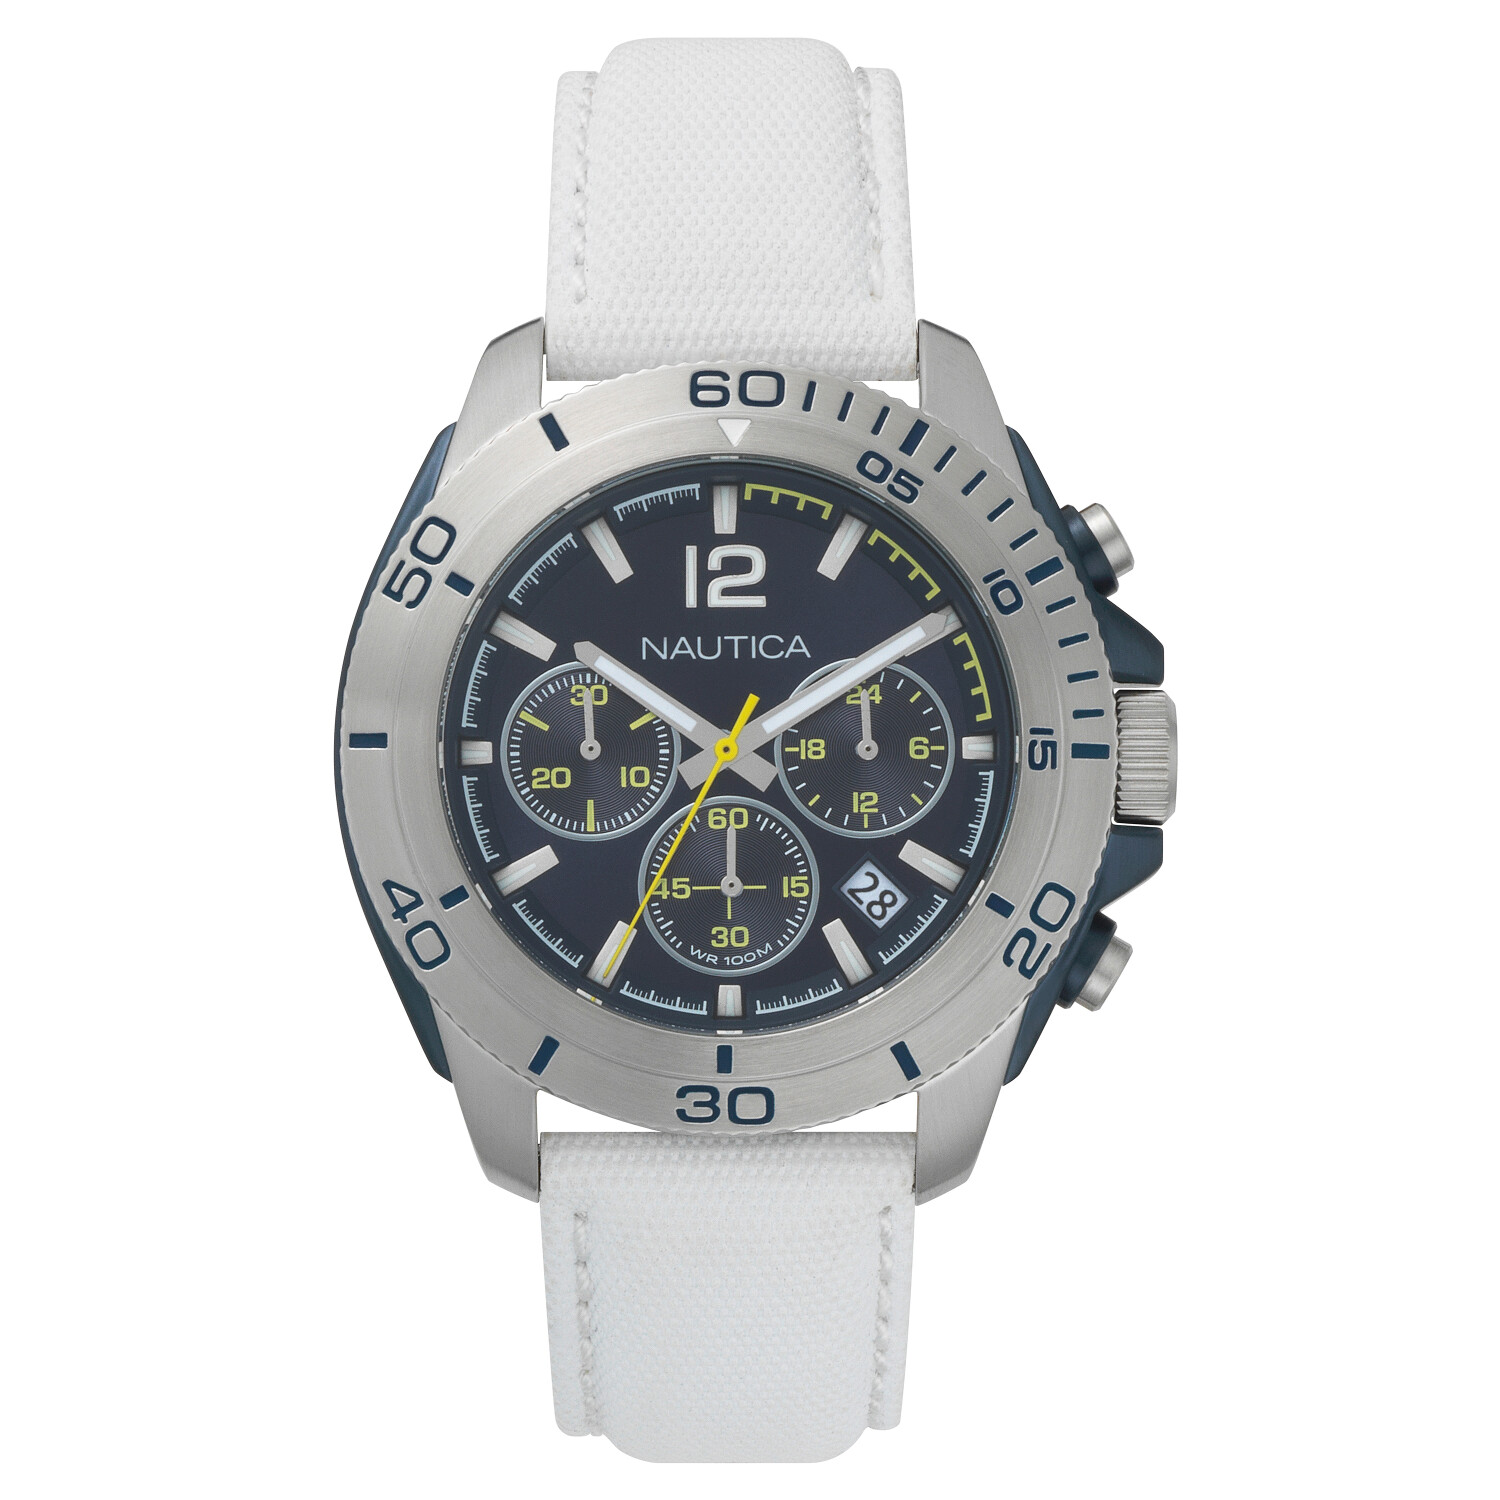 Nautica Watch NAPADR002 Andover Chronograph, Water Resistant, 24 Hour Time, Calendar, White